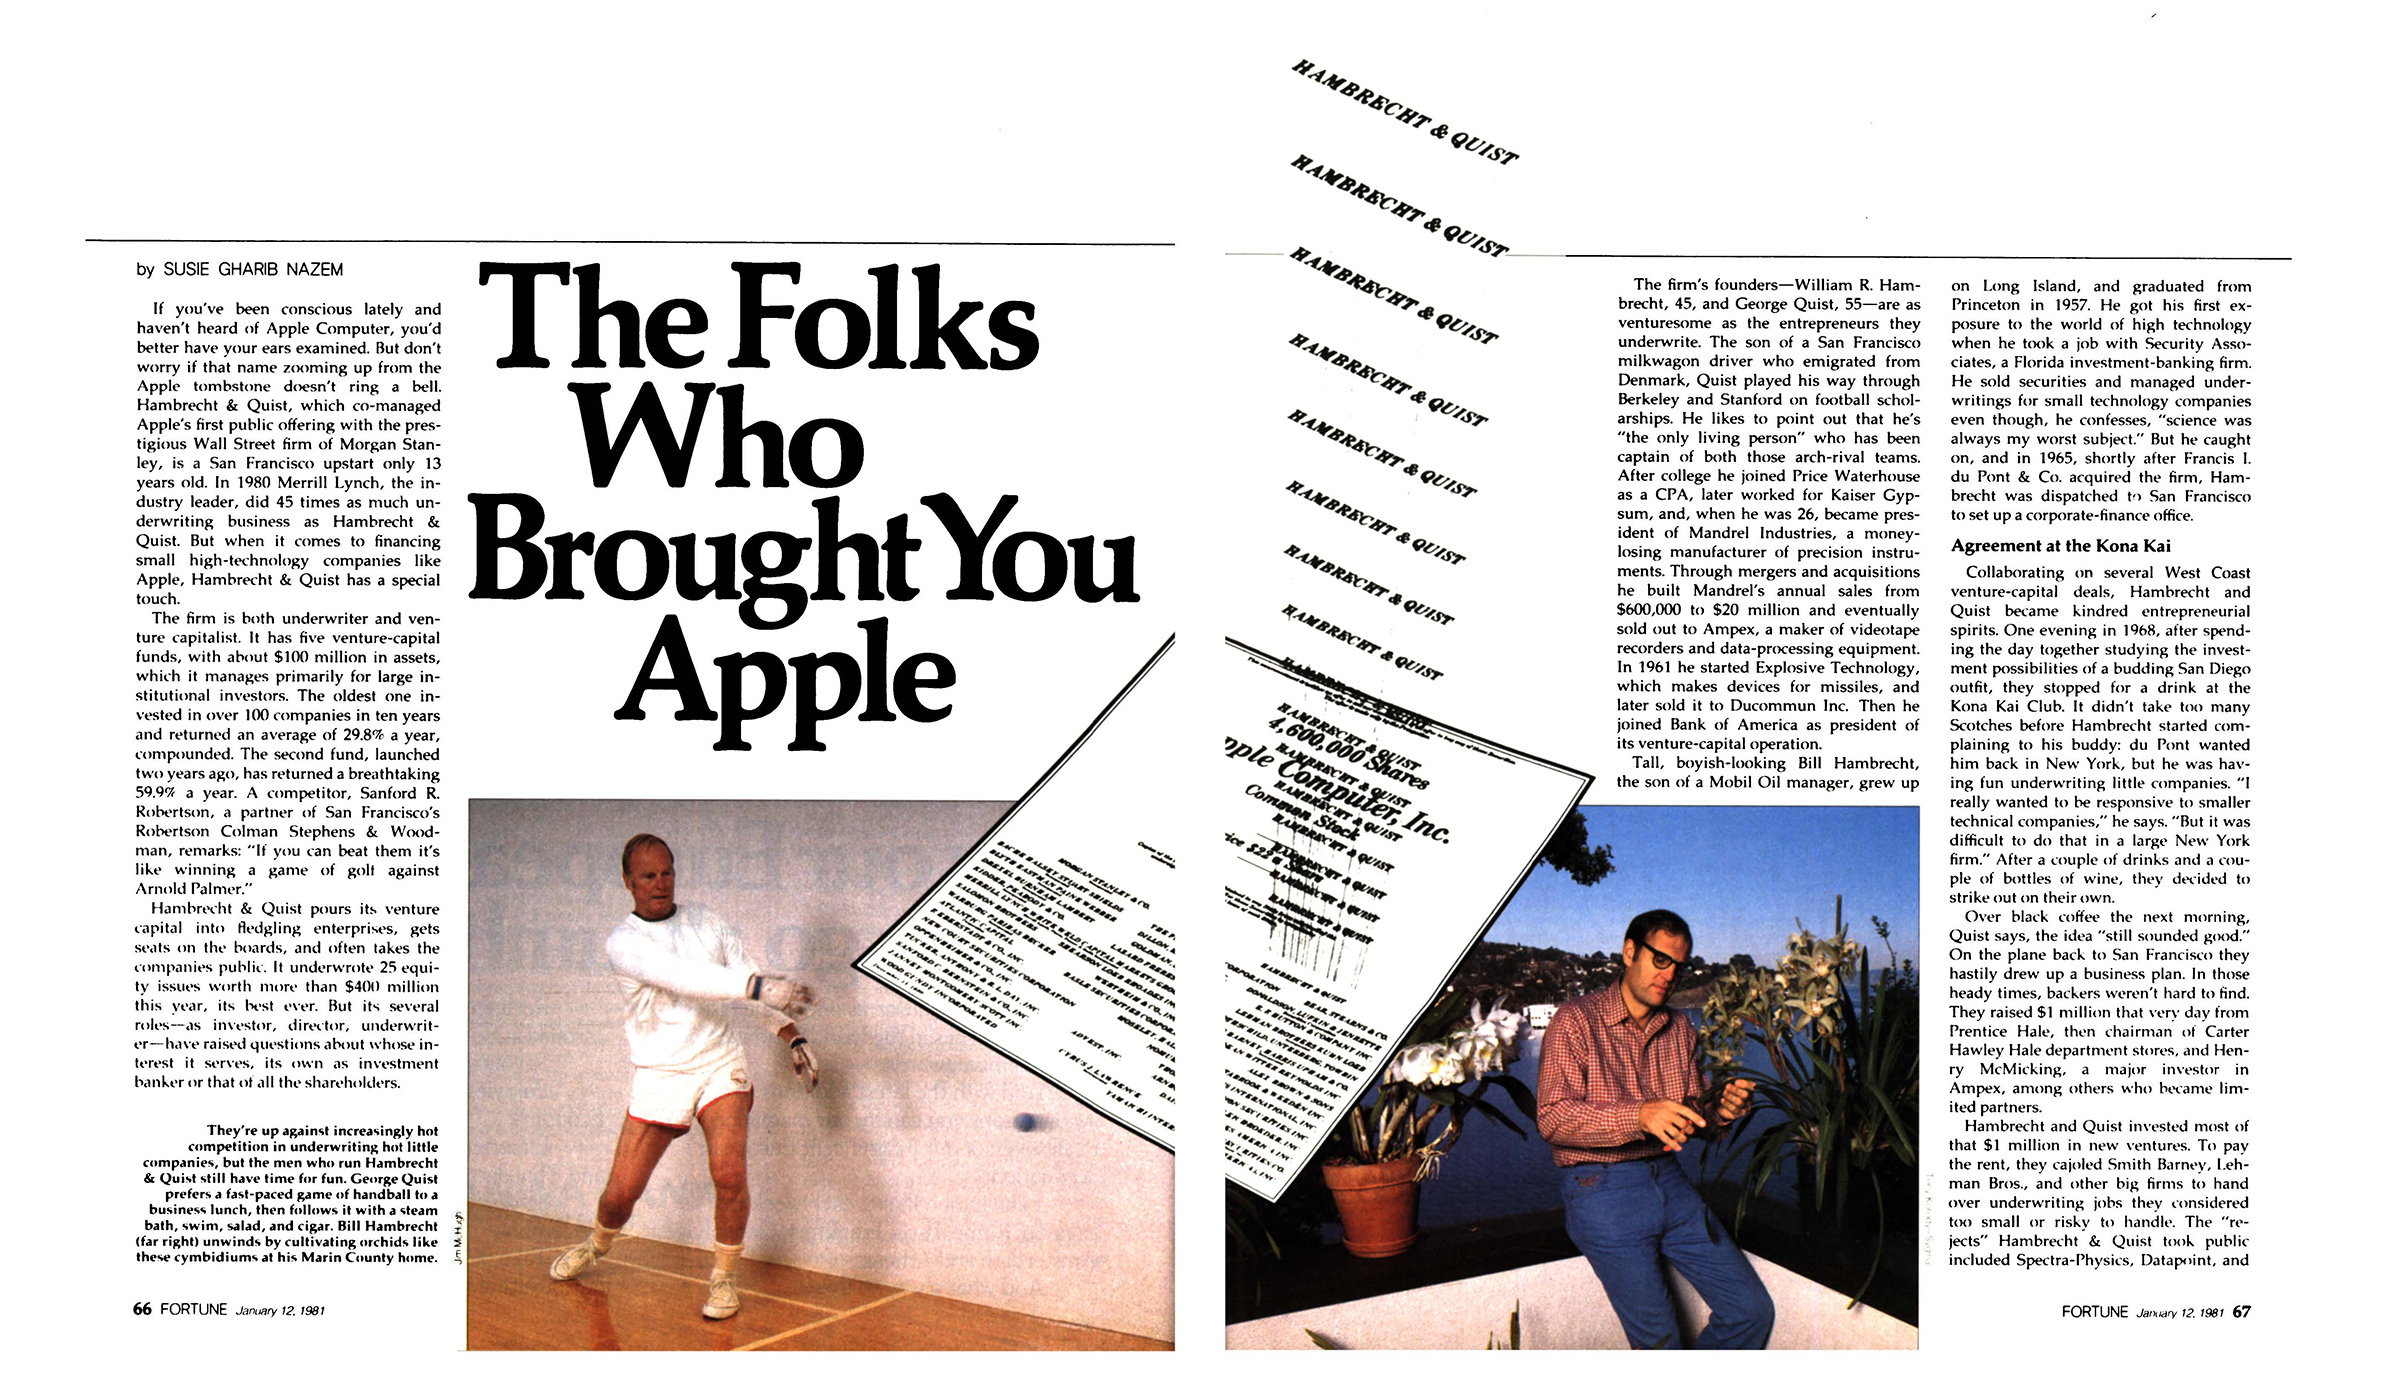 The Folks Who Brought You Apple (Fortune, 1981) | Fortune